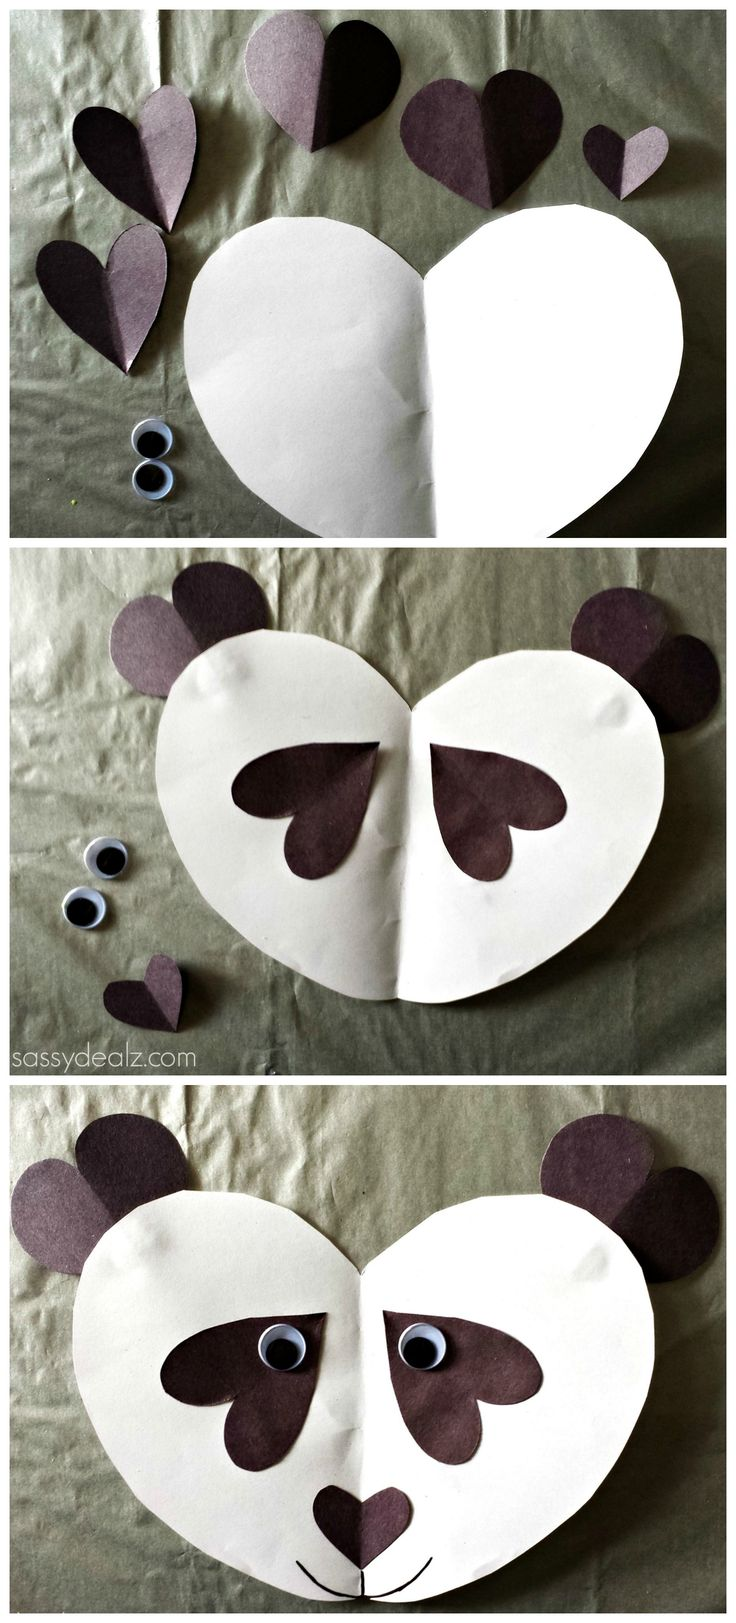 Panda Craft For Kids! Made out of paper hearts! #Valentines craft #Art project #DIY #Cheap | http://www.sassydealz.com/2014/02/panda-bear-craft-for-kids.html